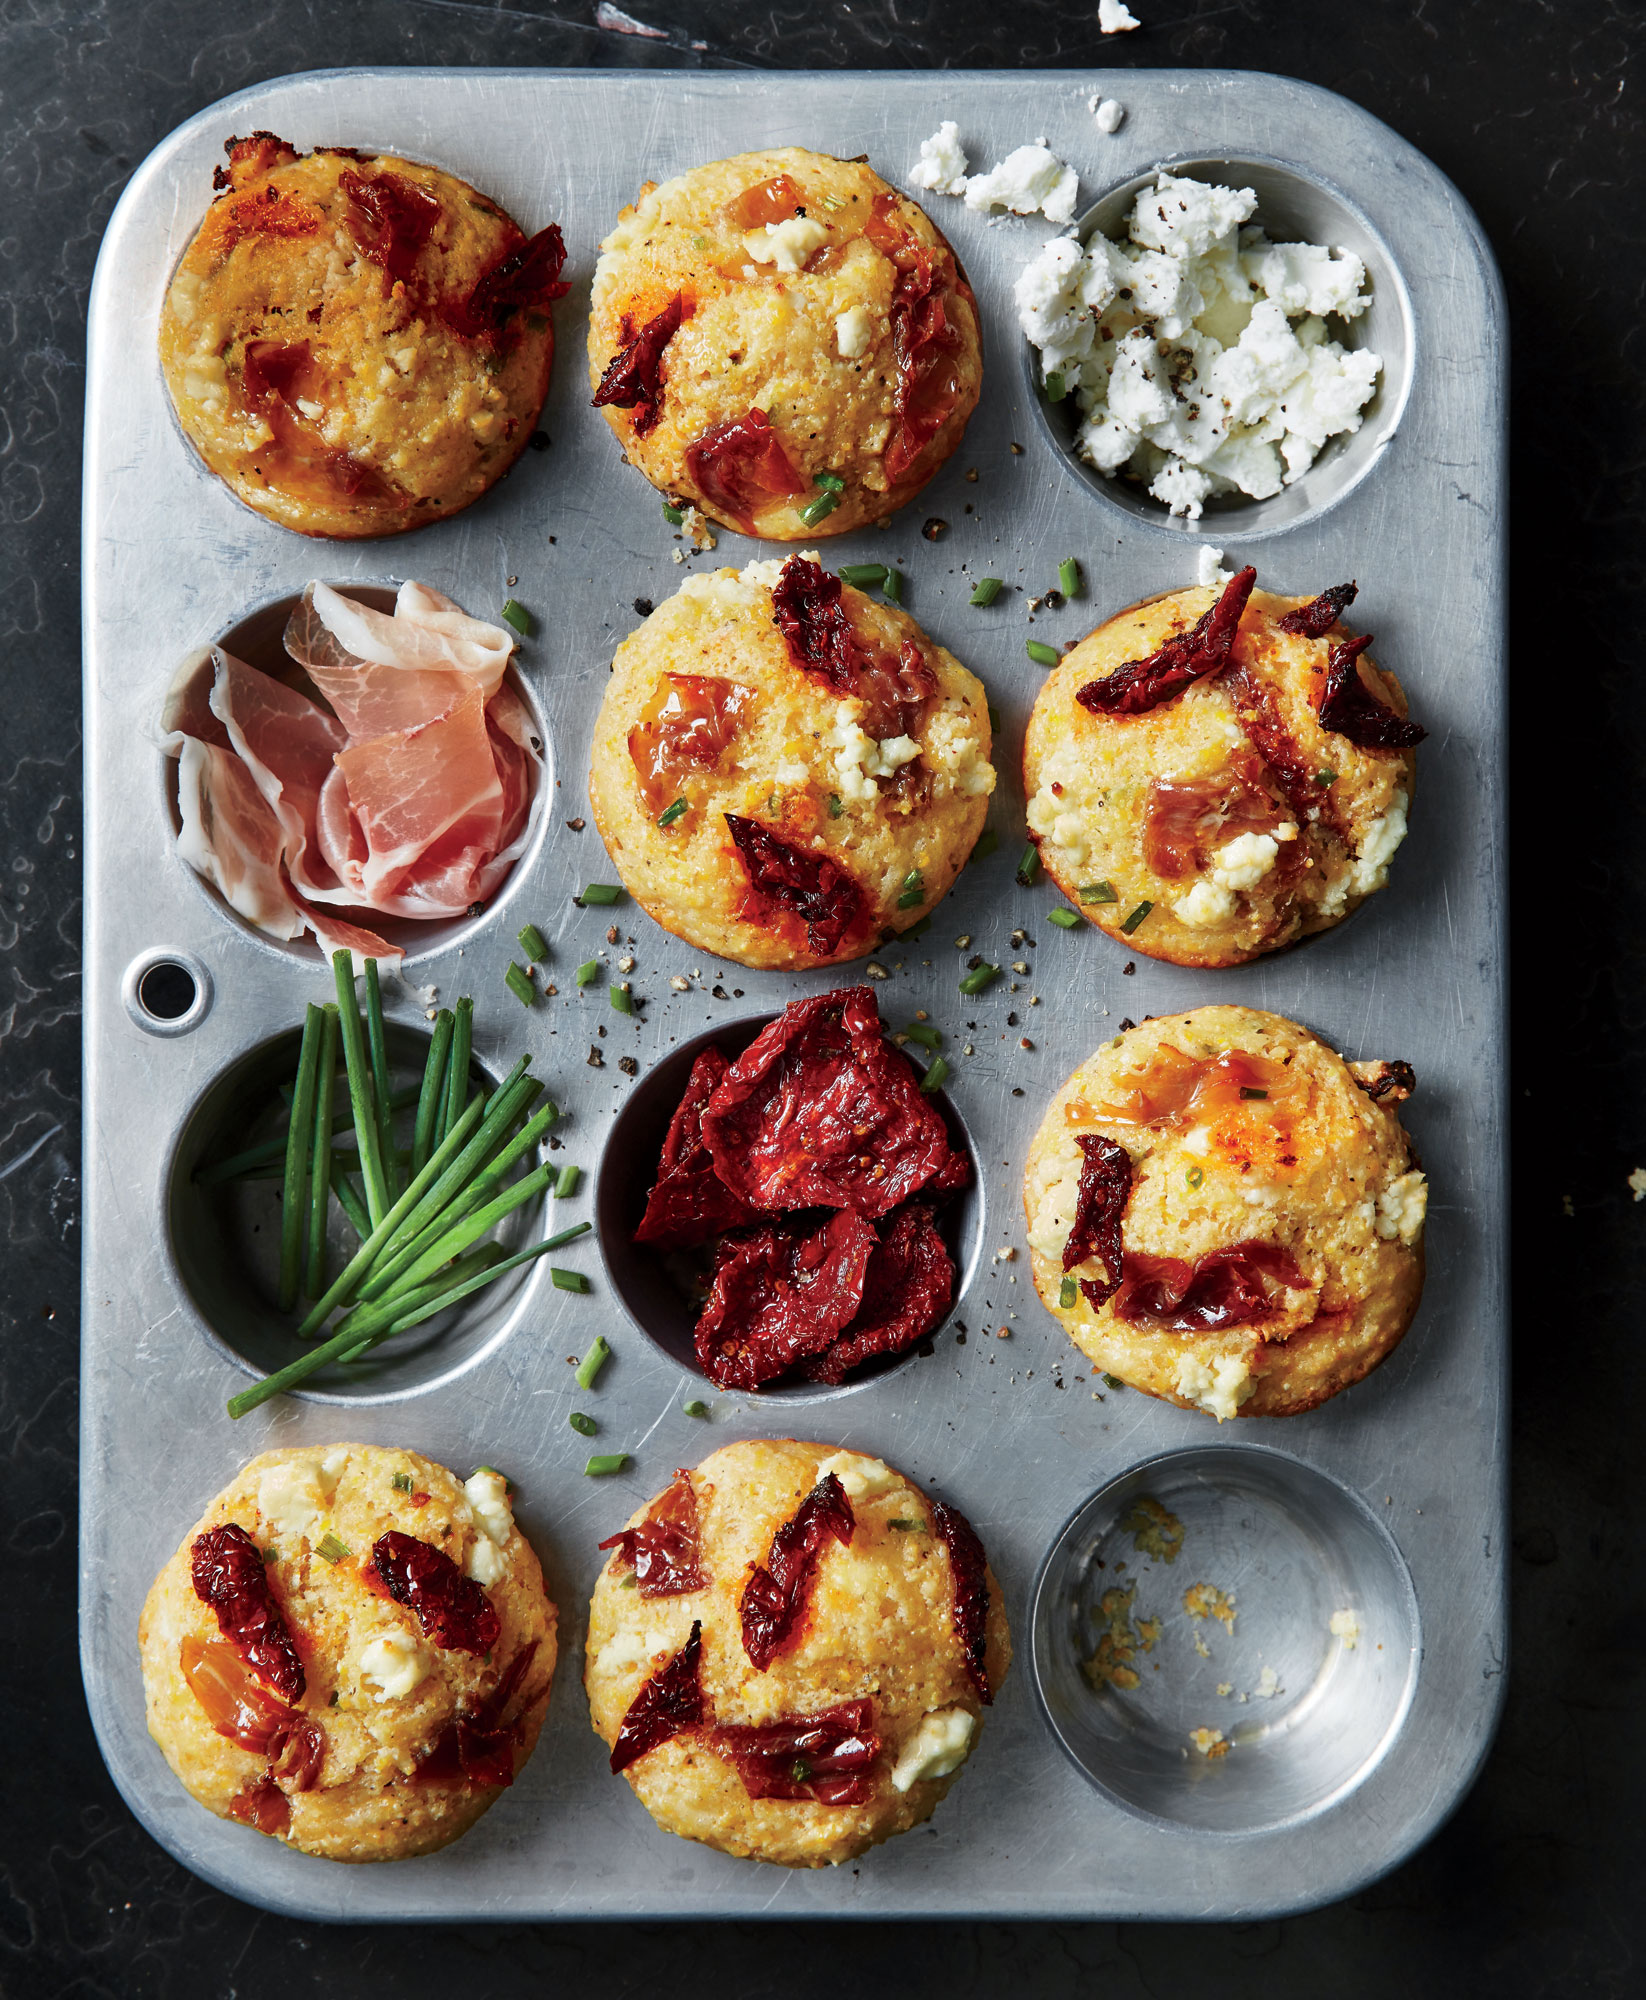 Corn Muffins with Prosciutto, Sun-Dried Tomatoes, and Goat Cheese